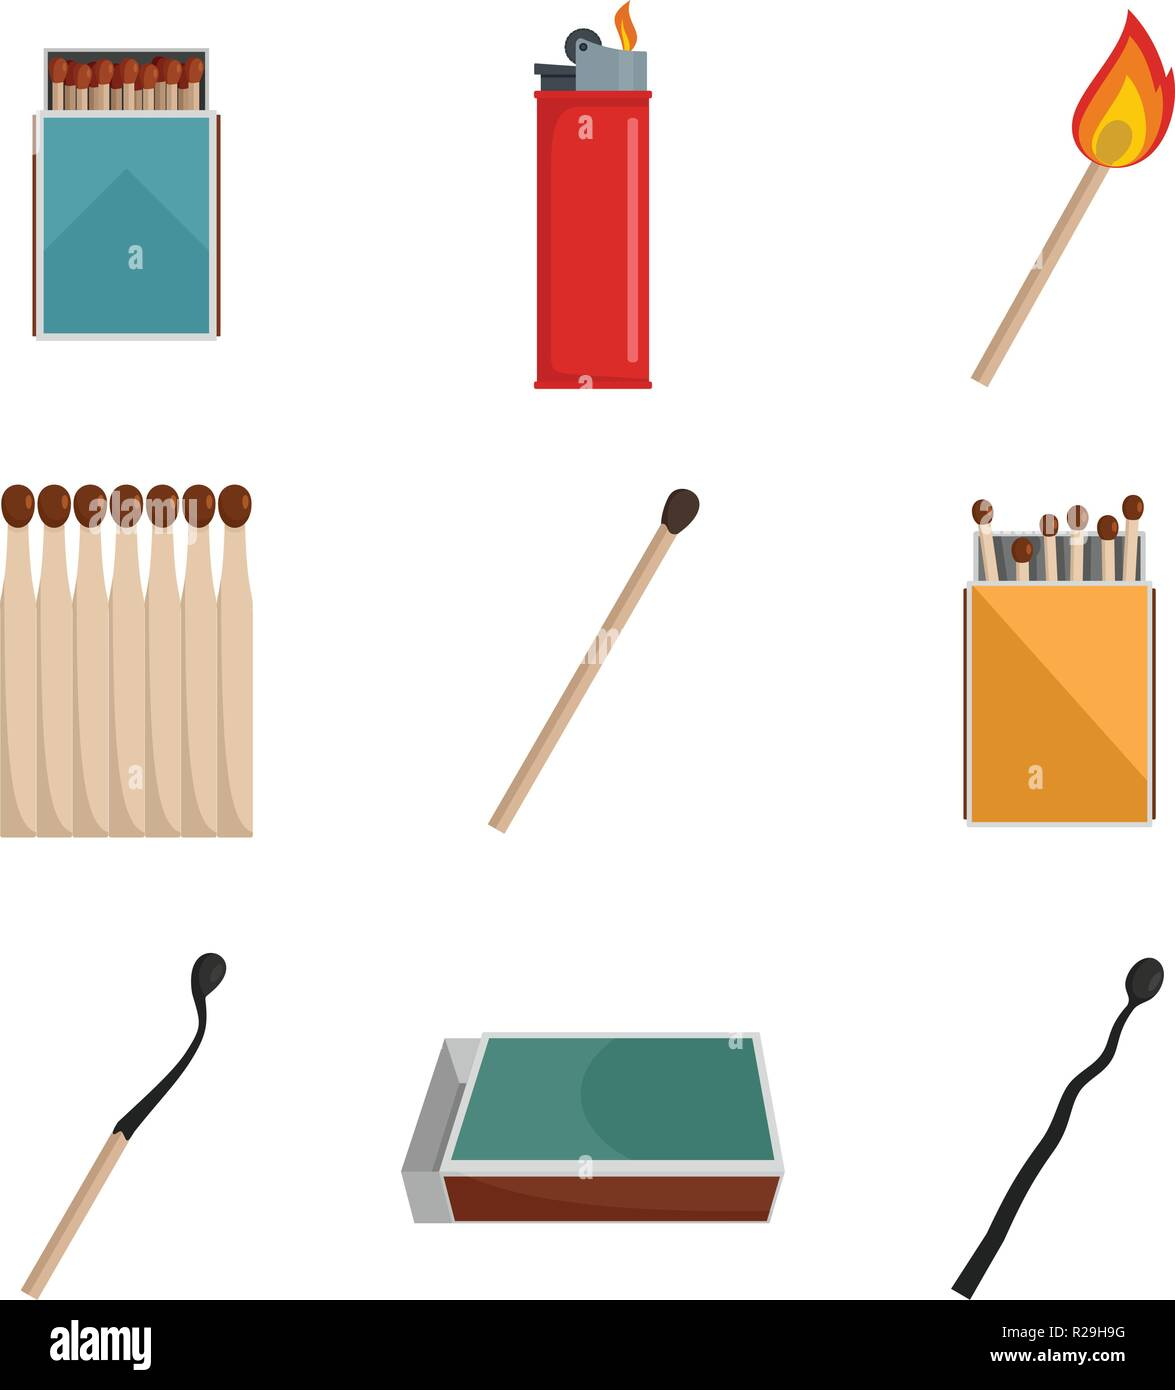 Safety match ignite burn icons set. Flat illustration of 9 safety match ignite burn vector icons isolated on white - Stock Image